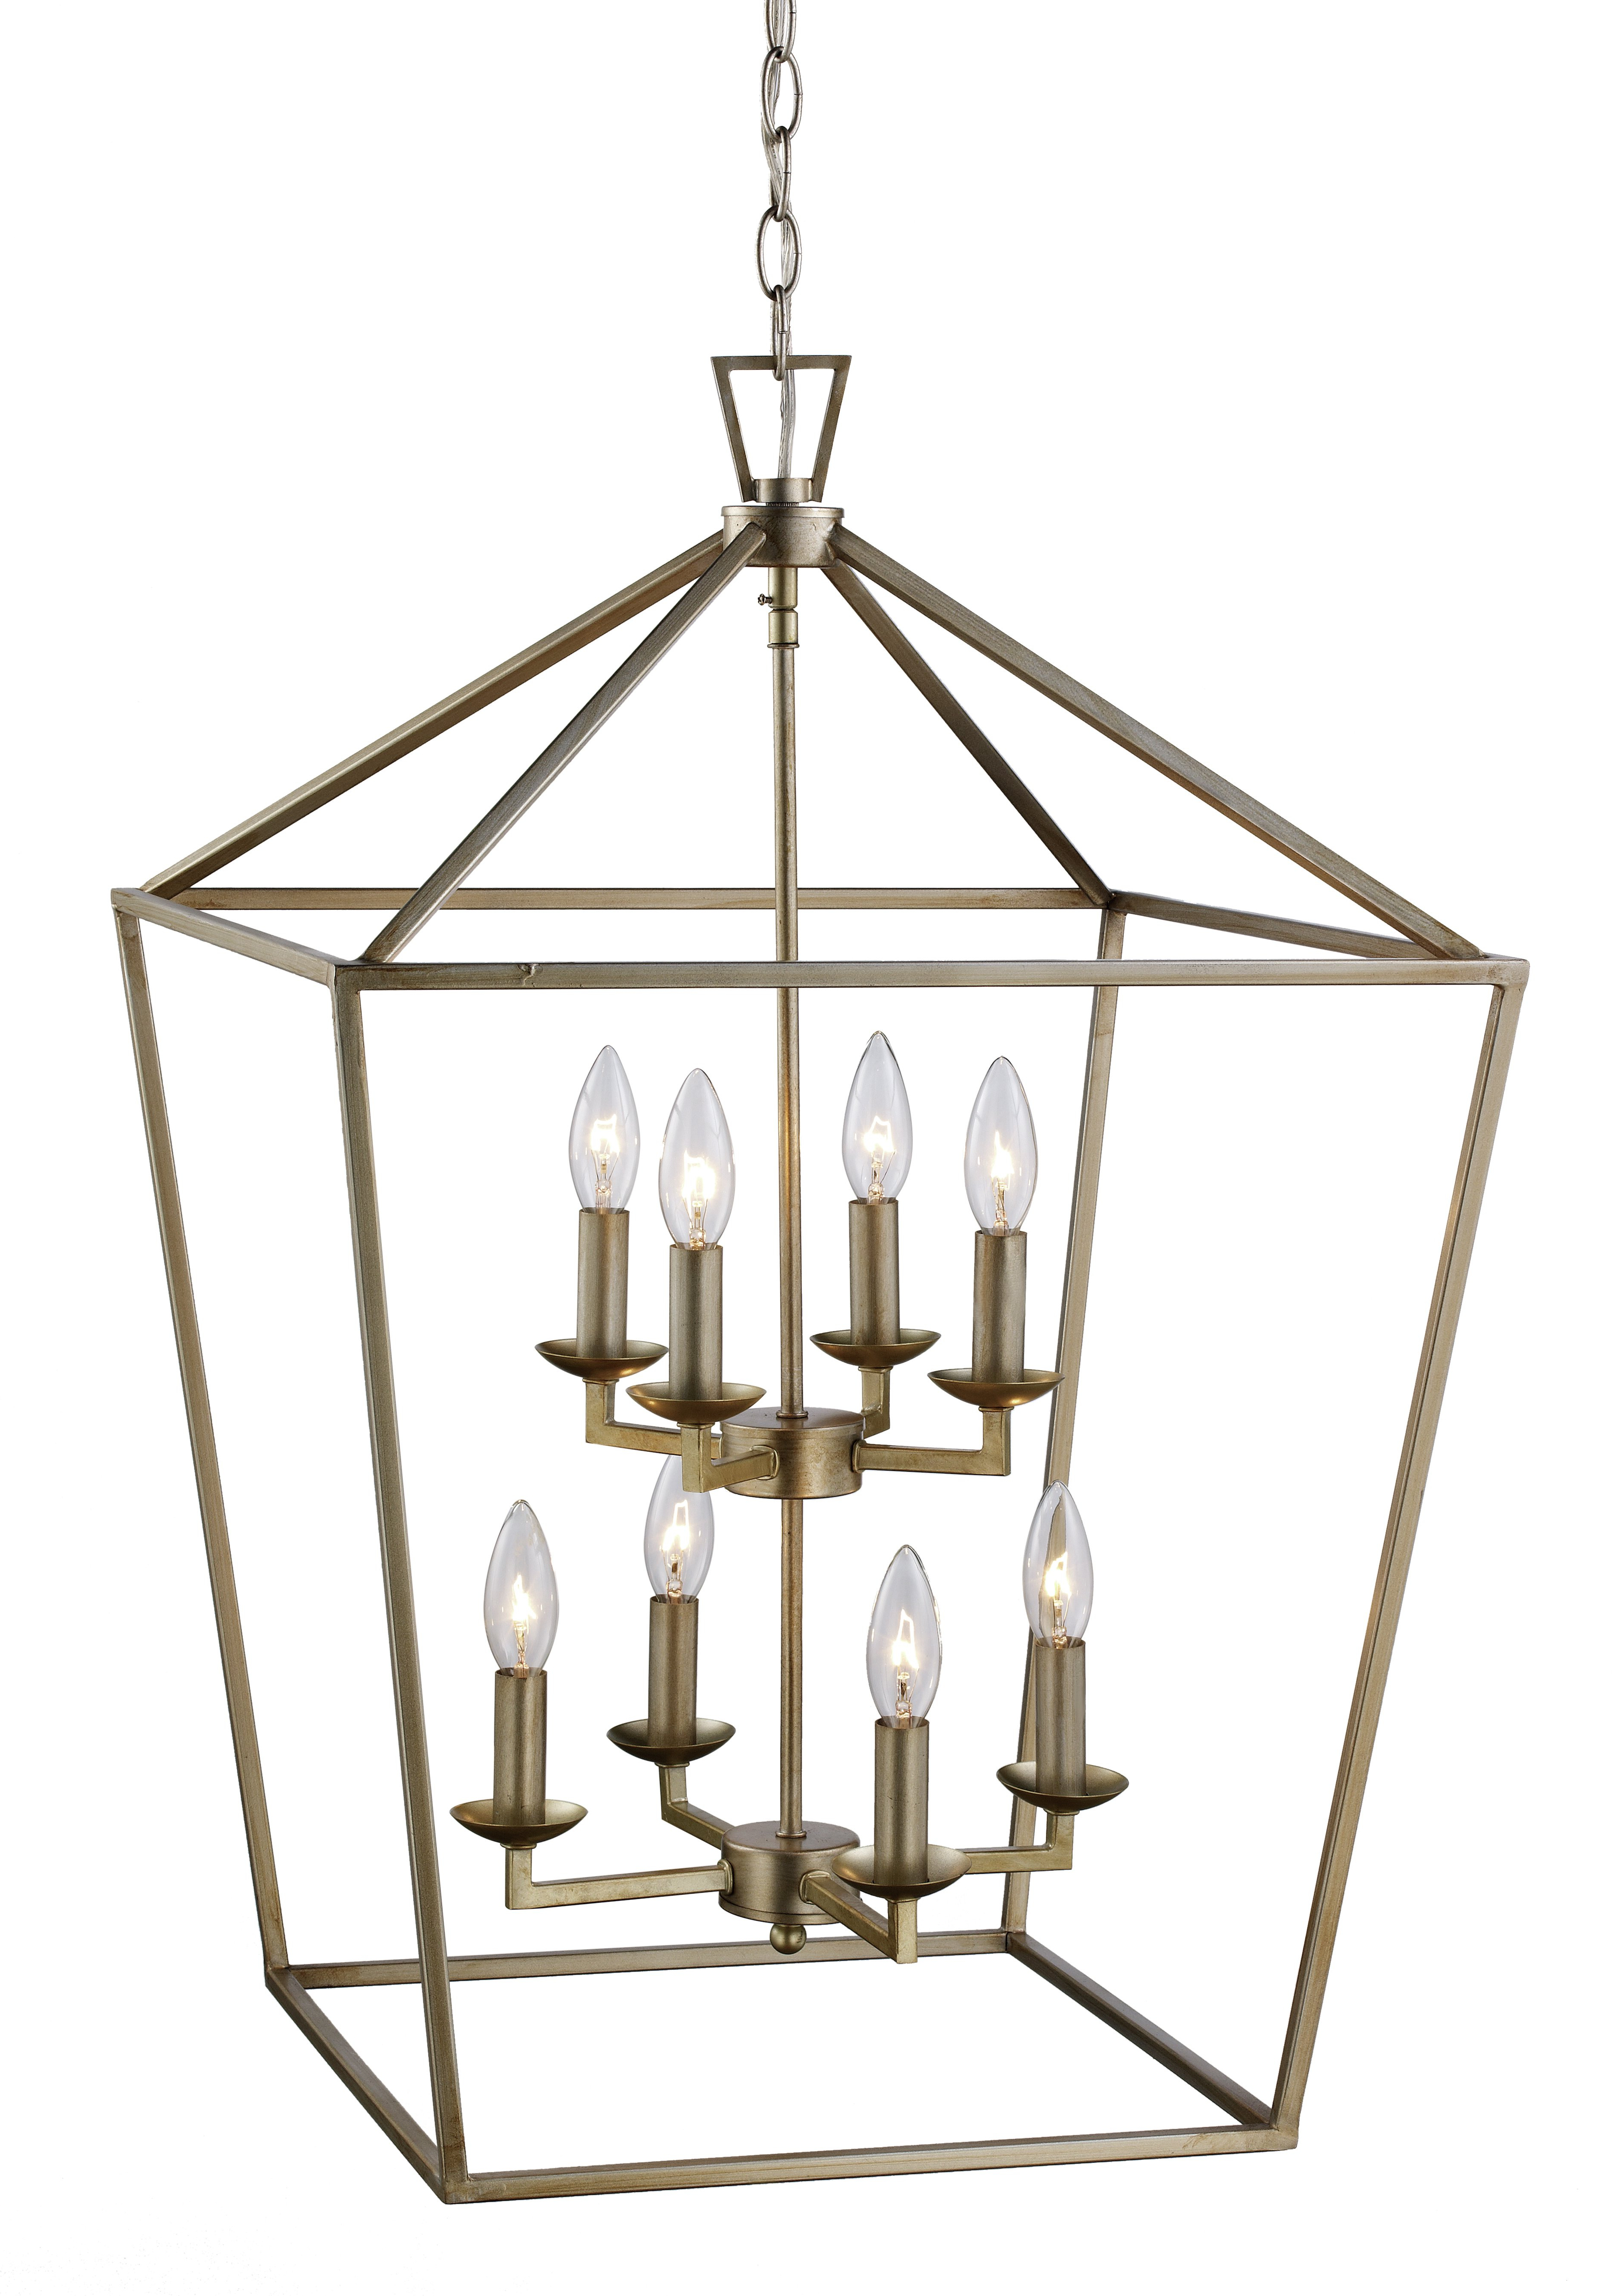 Carmen 8 Light Lantern Tiered Pendants Within Most Up To Date Carmen 8 Light Lantern Geometric Pendant (View 8 of 20)